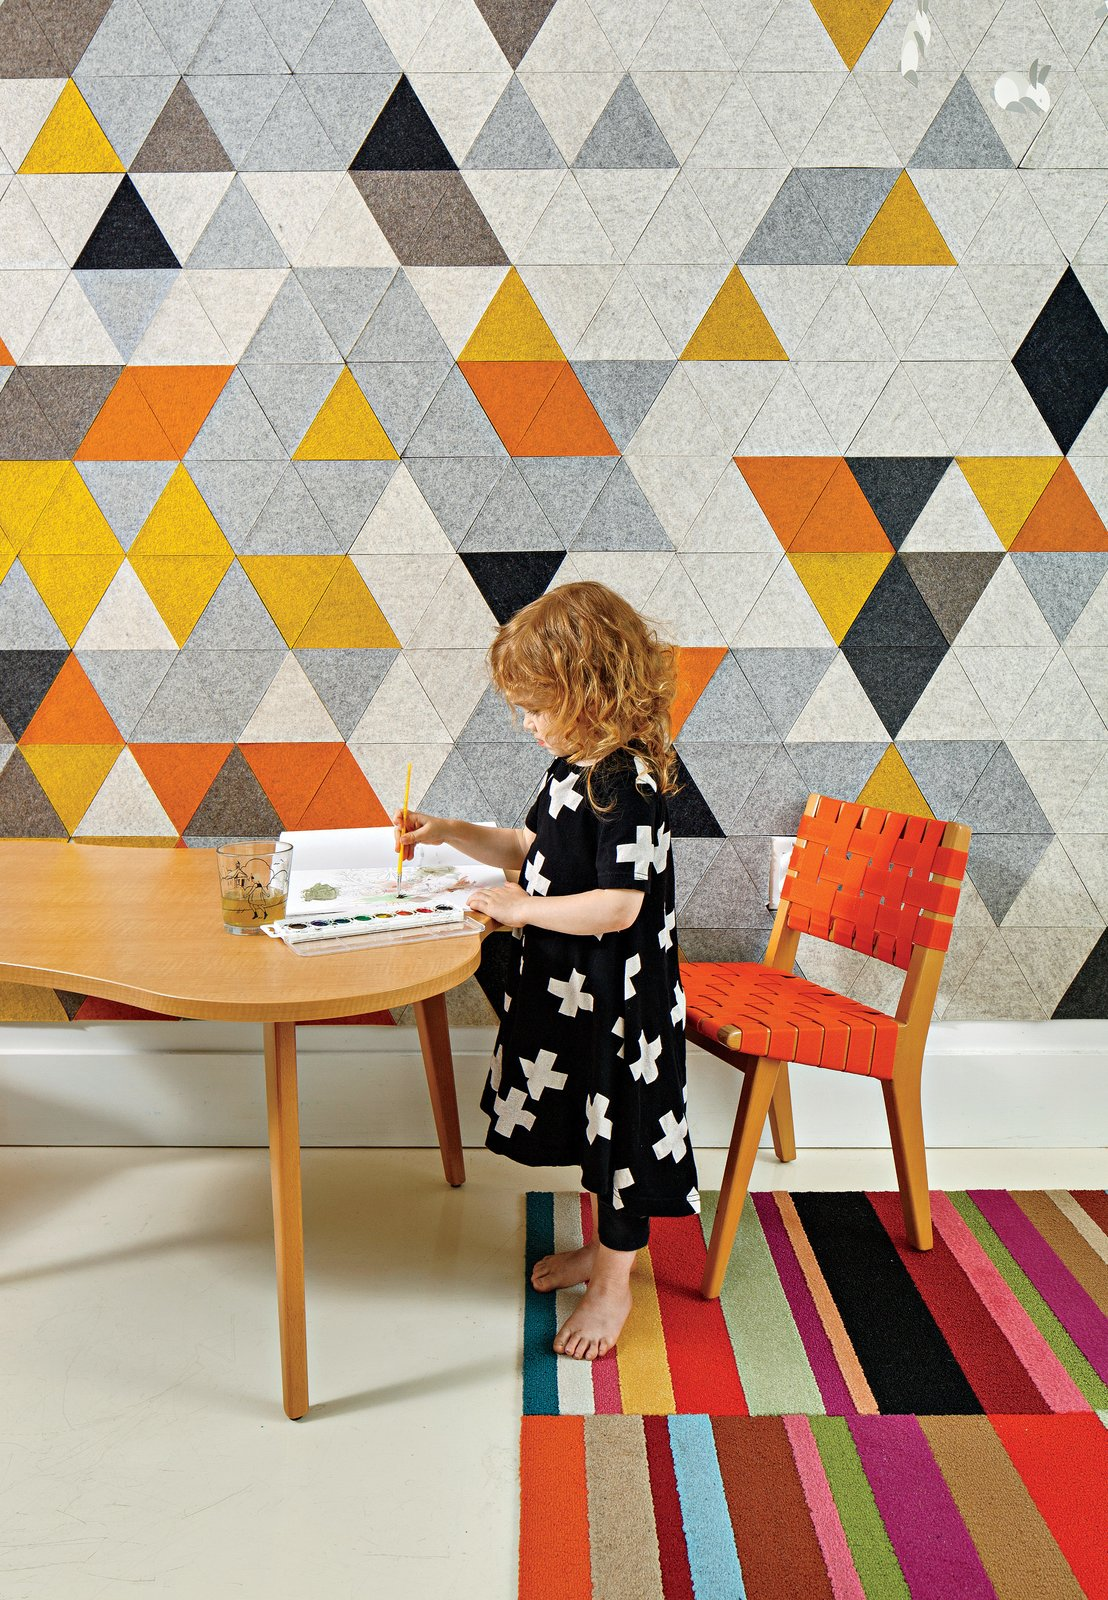 Kids Room, Playroom Room Type, Chair, Desk, and Rug Floor Chris Grimley and Kelly Smith transformed a cramped apartment into a family-friendly home. The room shared by Mae, three, and her little brother Roen, one, features a custom prototype mural by FilzFelt, their mother's textile design company. The carpet is by Flor, and the child-size chair and Amoeba table are both by Jens Risom for Knoll.  Photo 1 of 8 in Boston Renovation Accents Minimalist White with Rich Felt Murals